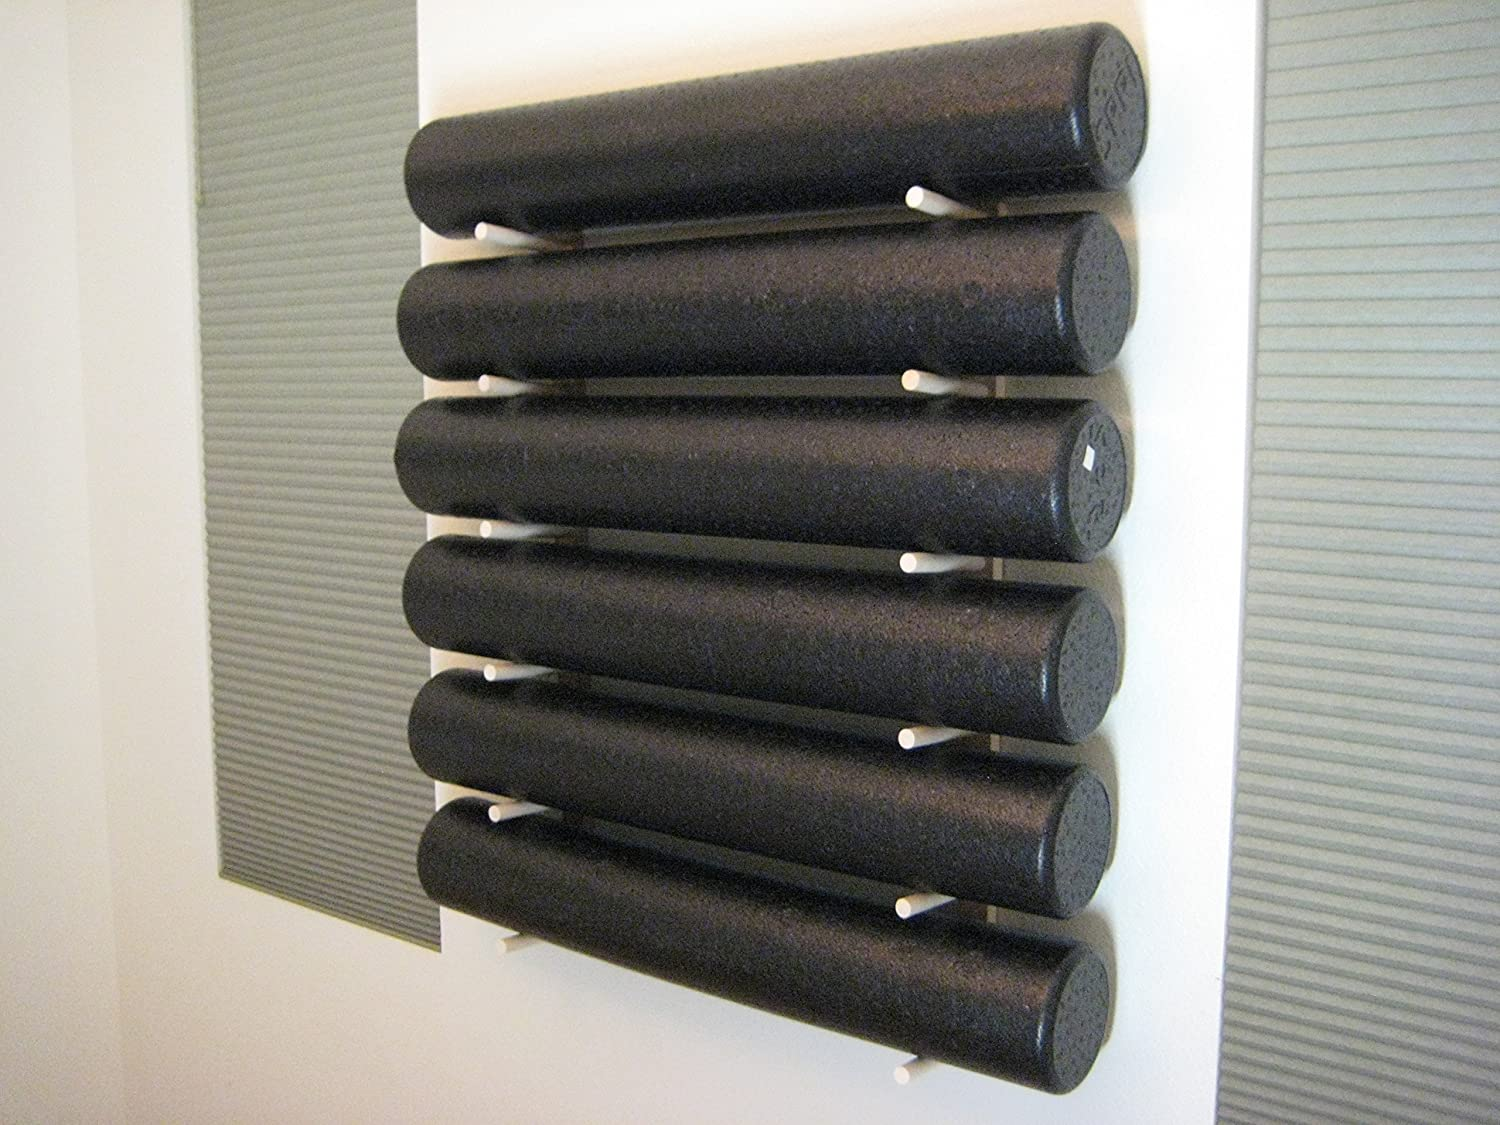 Foam Roller and Yoga Mat Storage Rack Wall Mount in Sustainable Hardwood 36 6-Space 1 Set